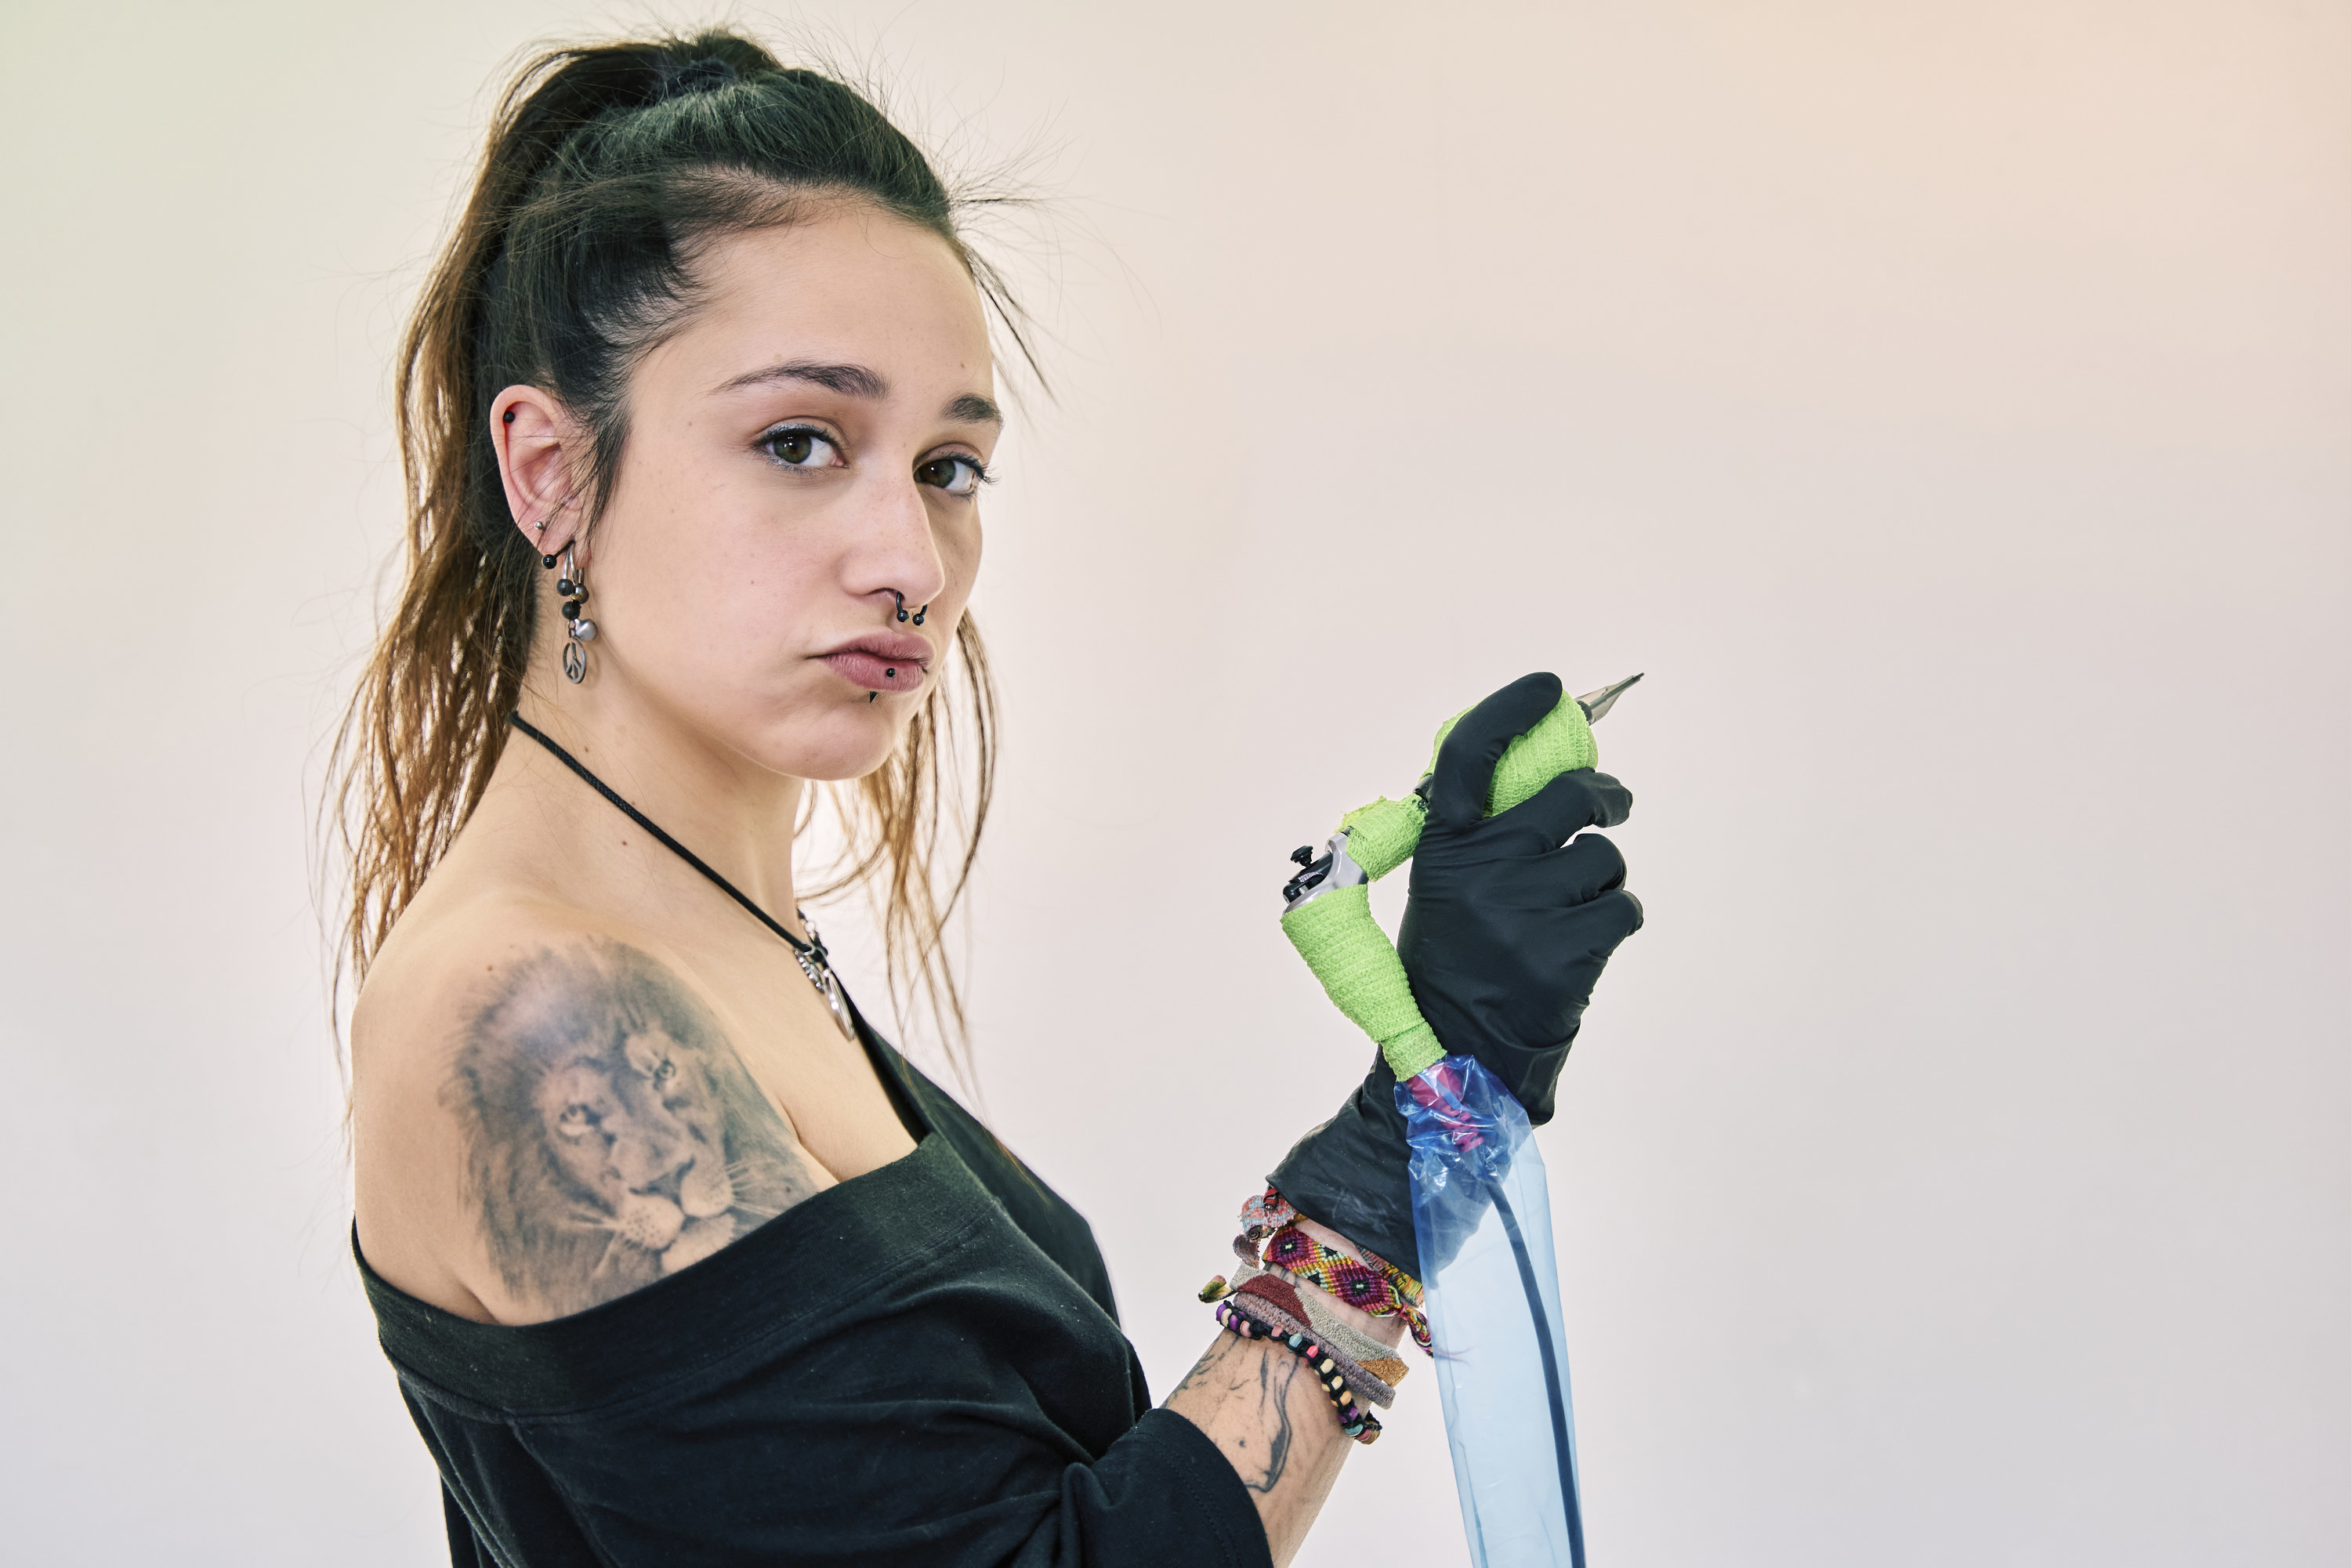 A person holding a tattoo needle